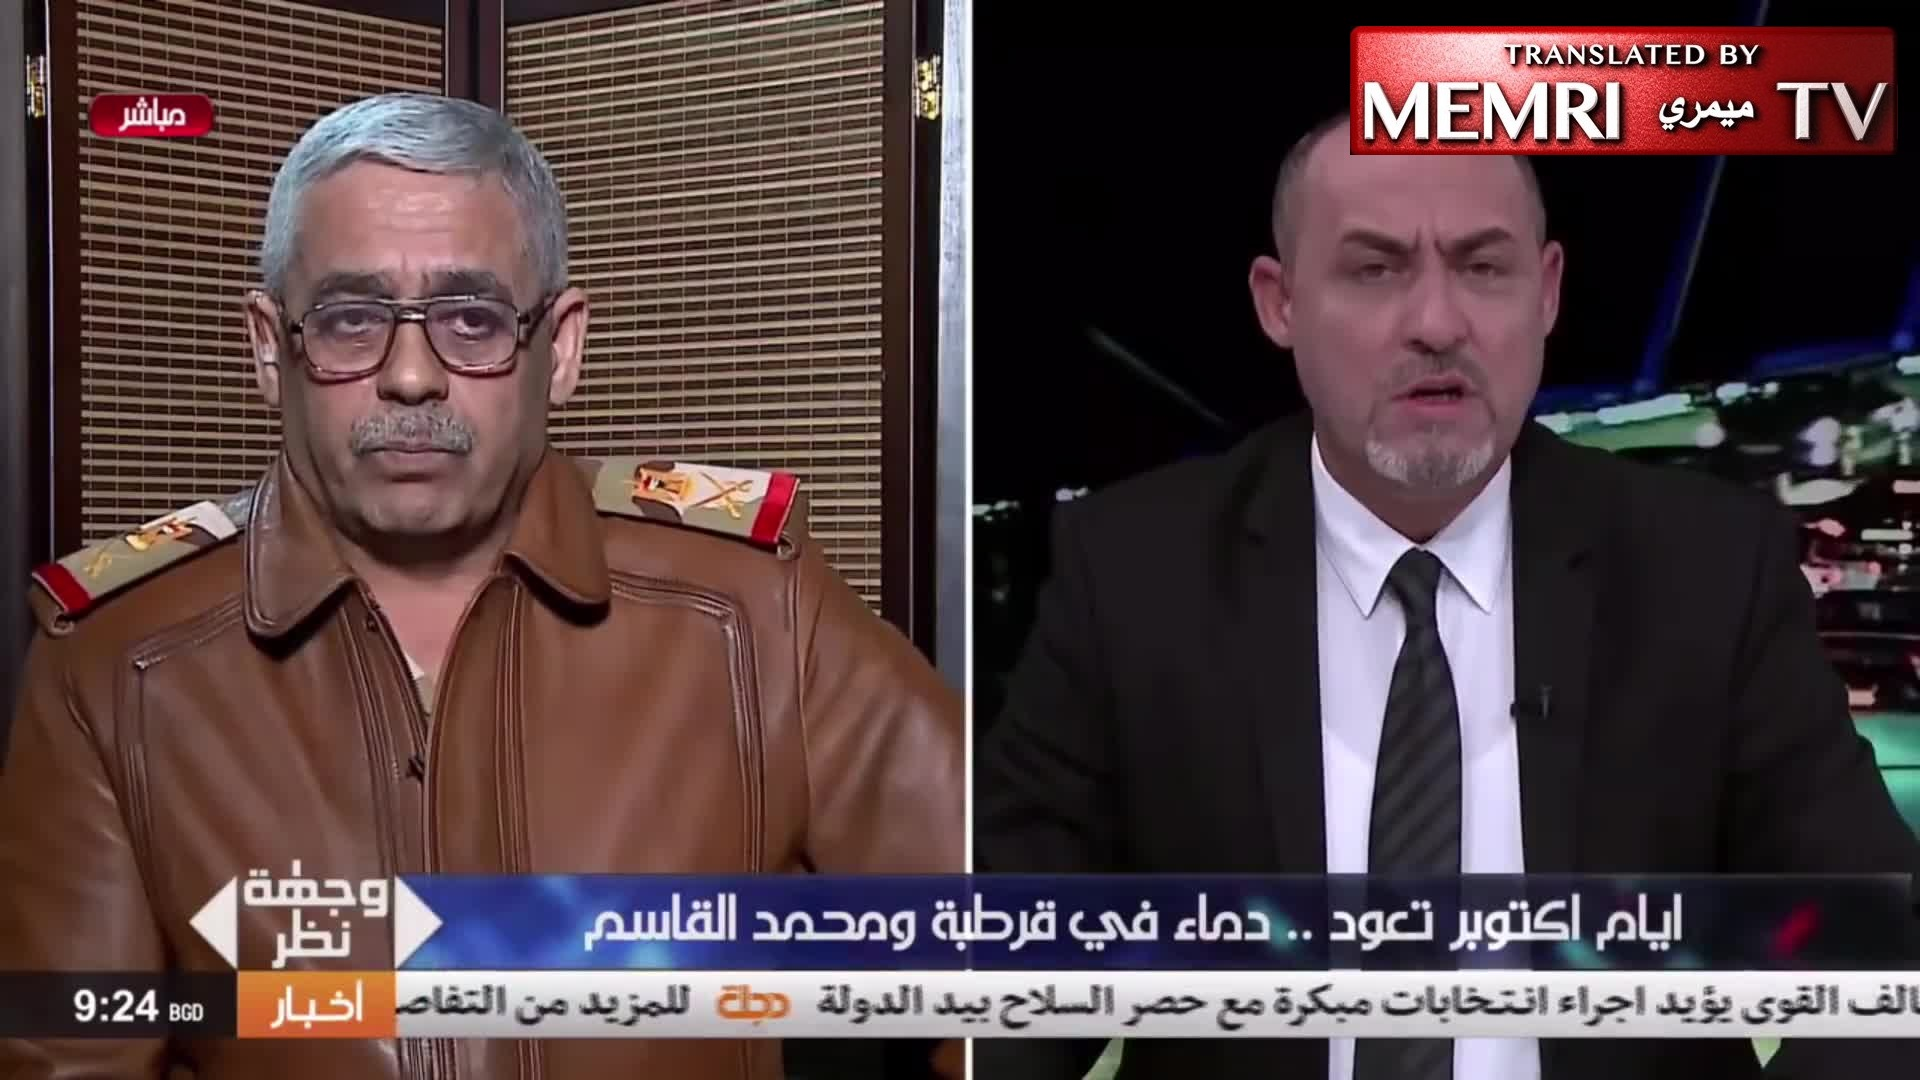 Spokesman for the Commander-in-Chief of Iraq's Armed Forces Argues with TV Host over Number of Victims among Protesters; Interview Degenerates into Insults